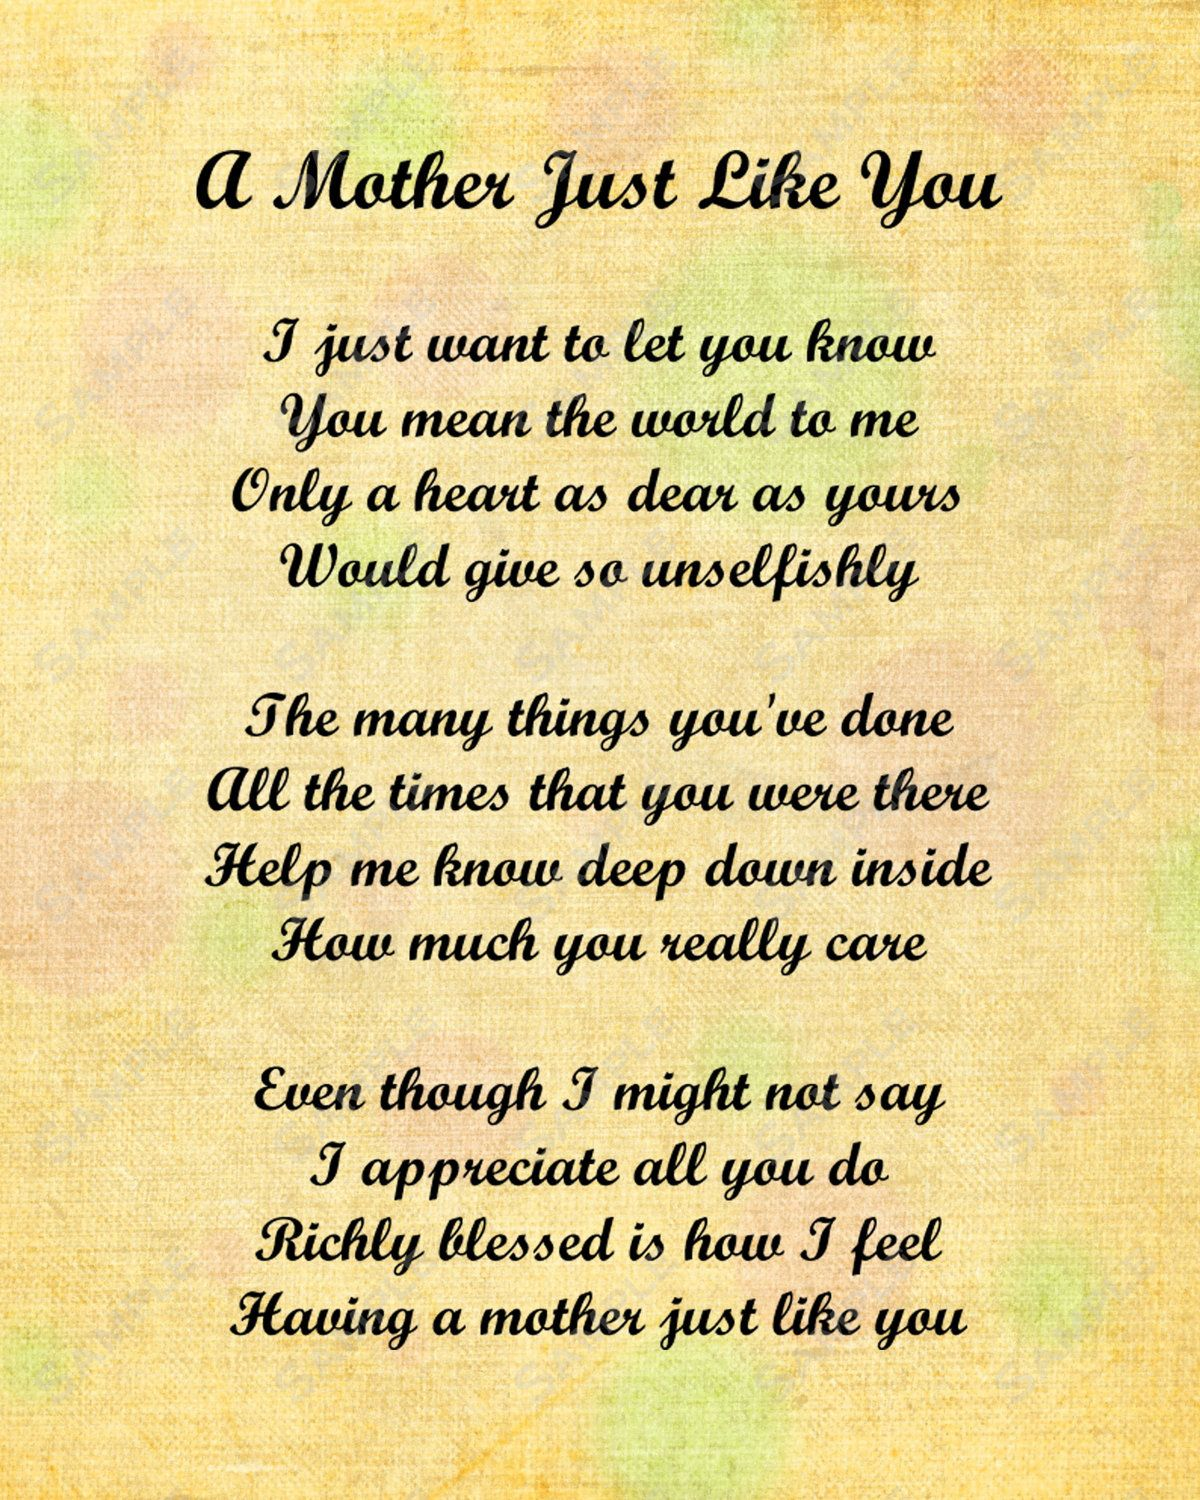 Uncategorized I Love You Daddy Poems mother just like you love poem for mom 8 x 10 by queenofheartgifts 4 99